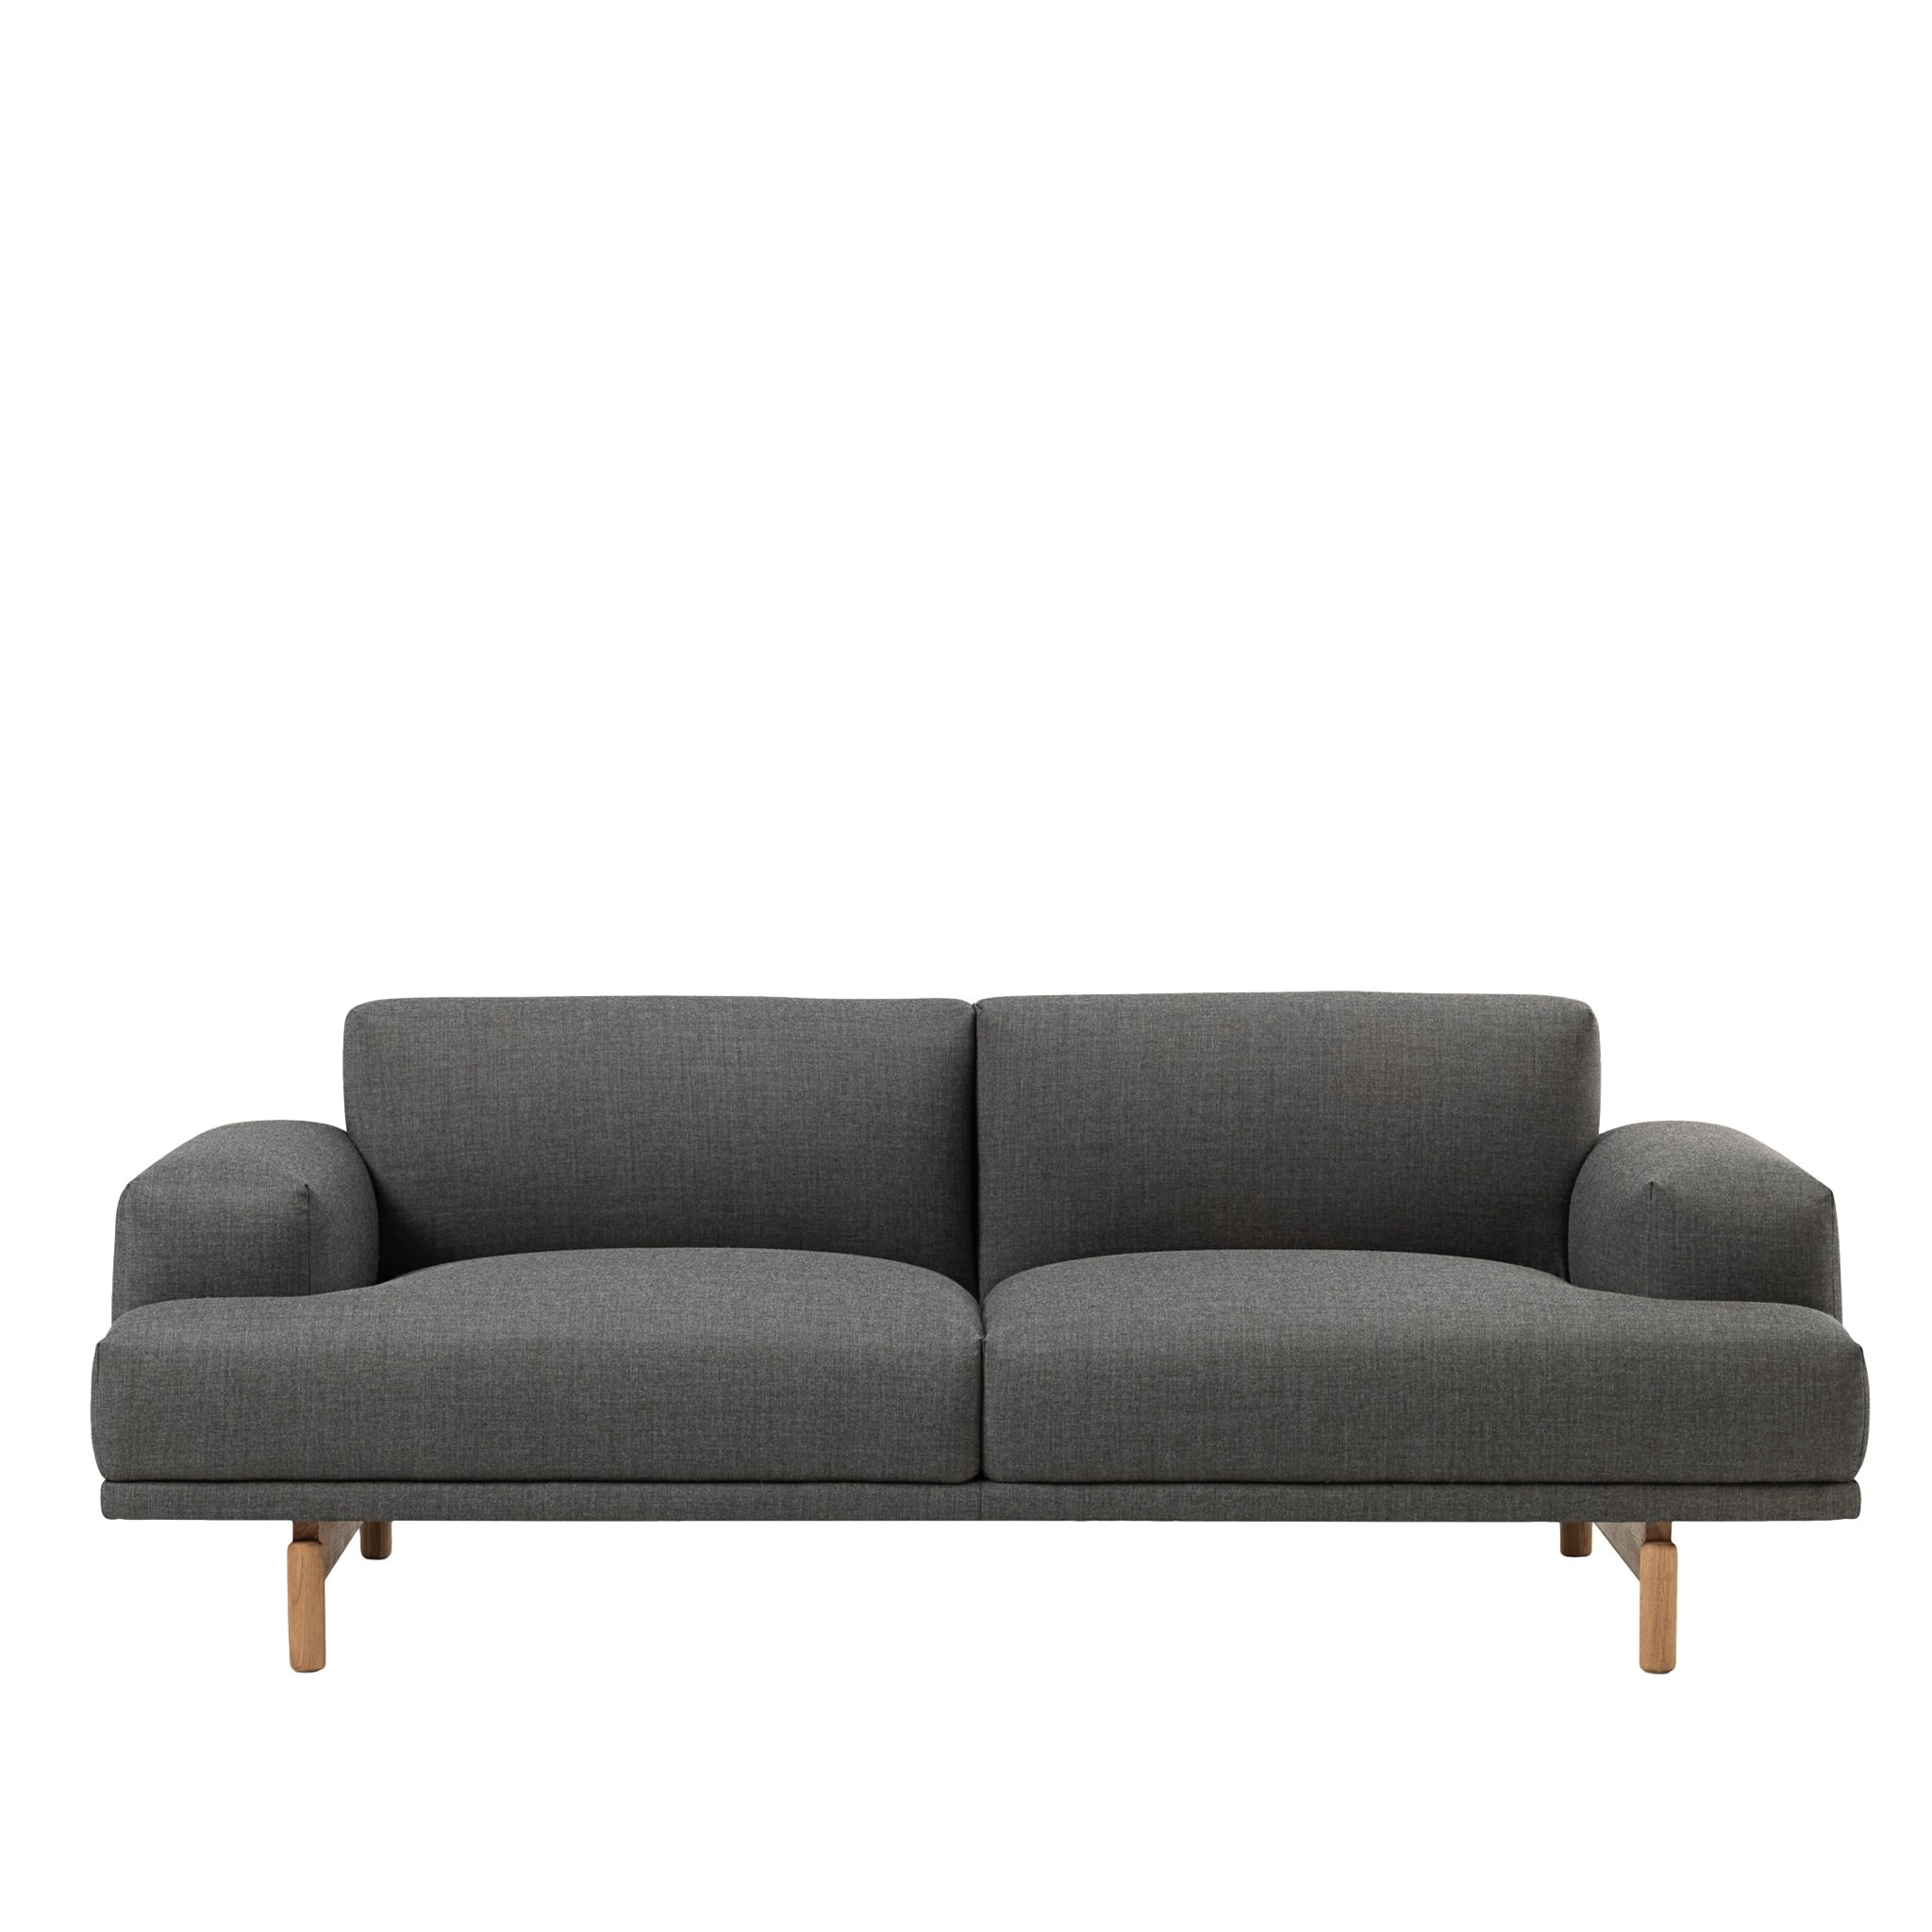 Compose Sofa by Muuto